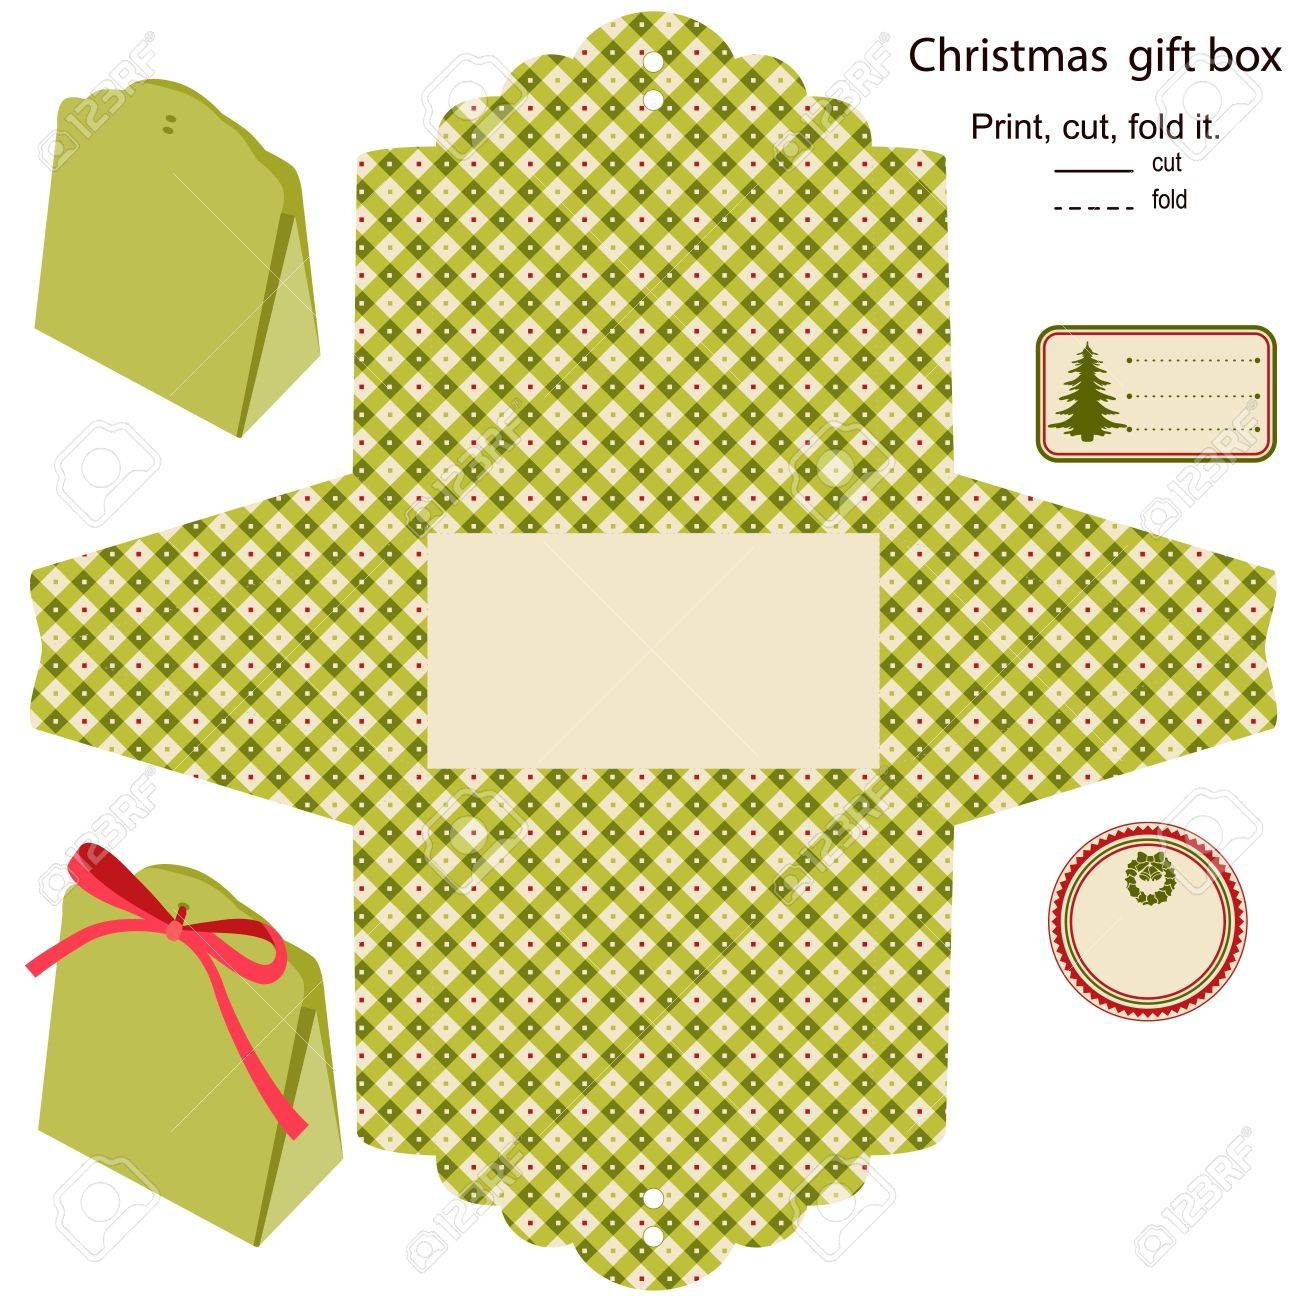 gift box isolated christmas pattern empty label template royalty gift box isolated christmas pattern empty label template stock vector 15762021